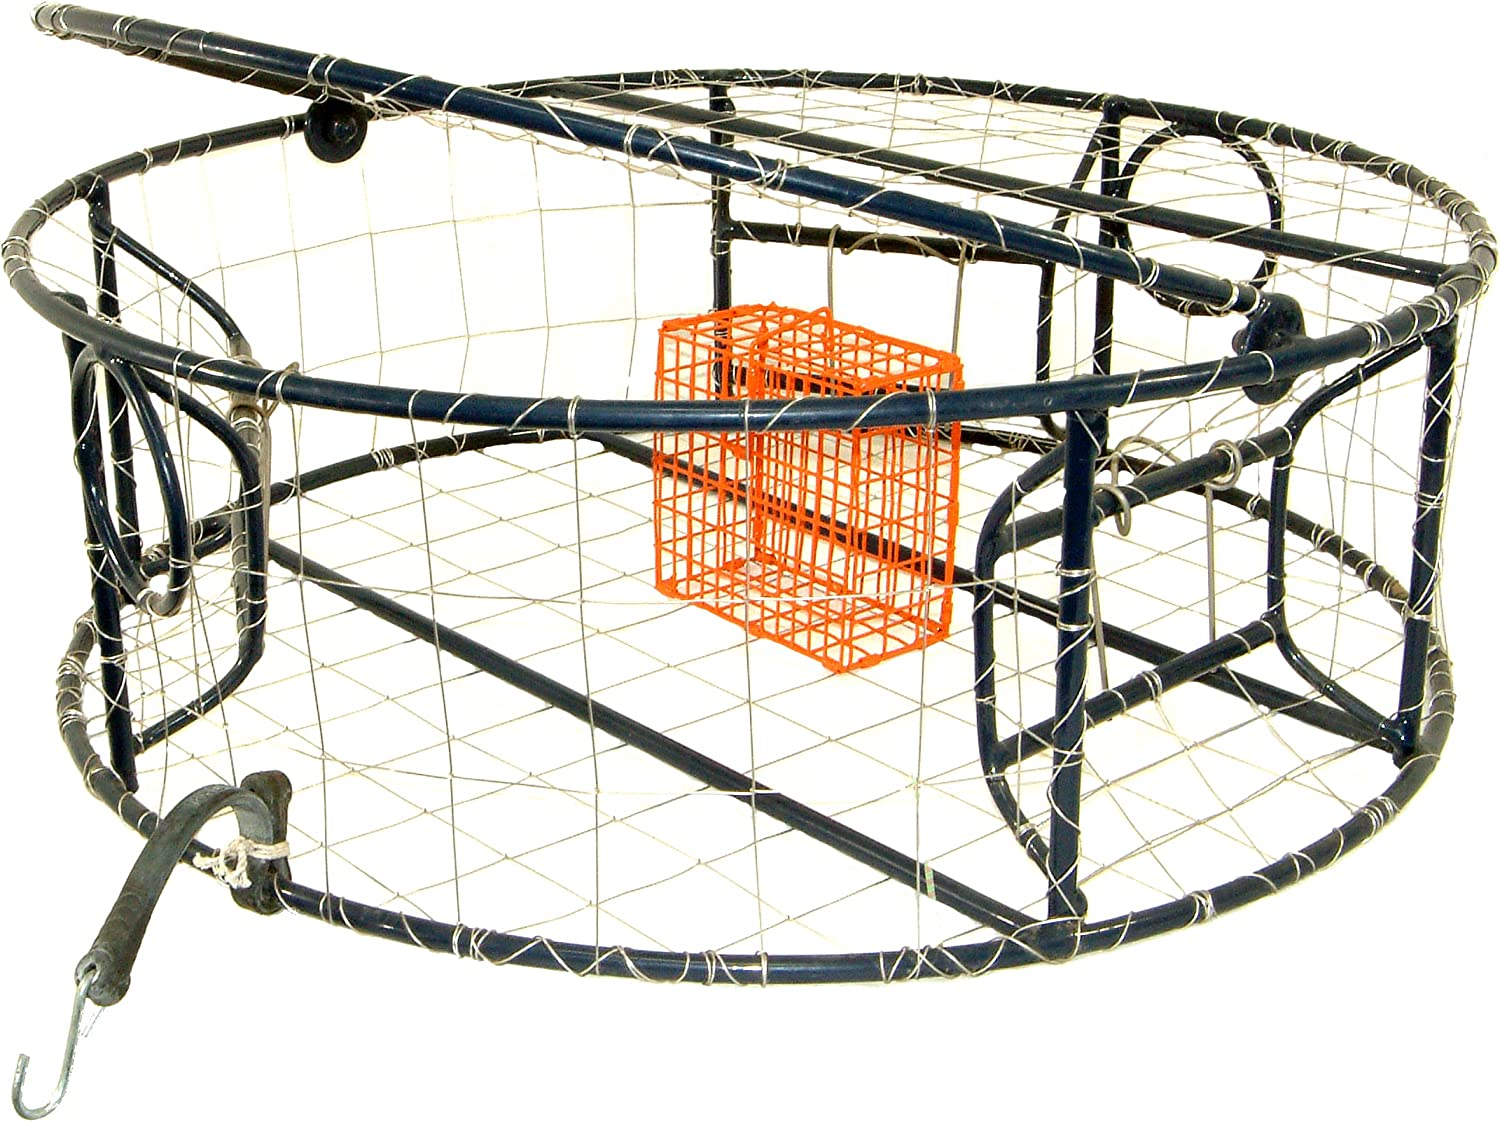 Amazon.com : Protoco 3 Tunnel Ultra Lite Crab Pot : Protoco Crab Traps :  Sports & Outdoors